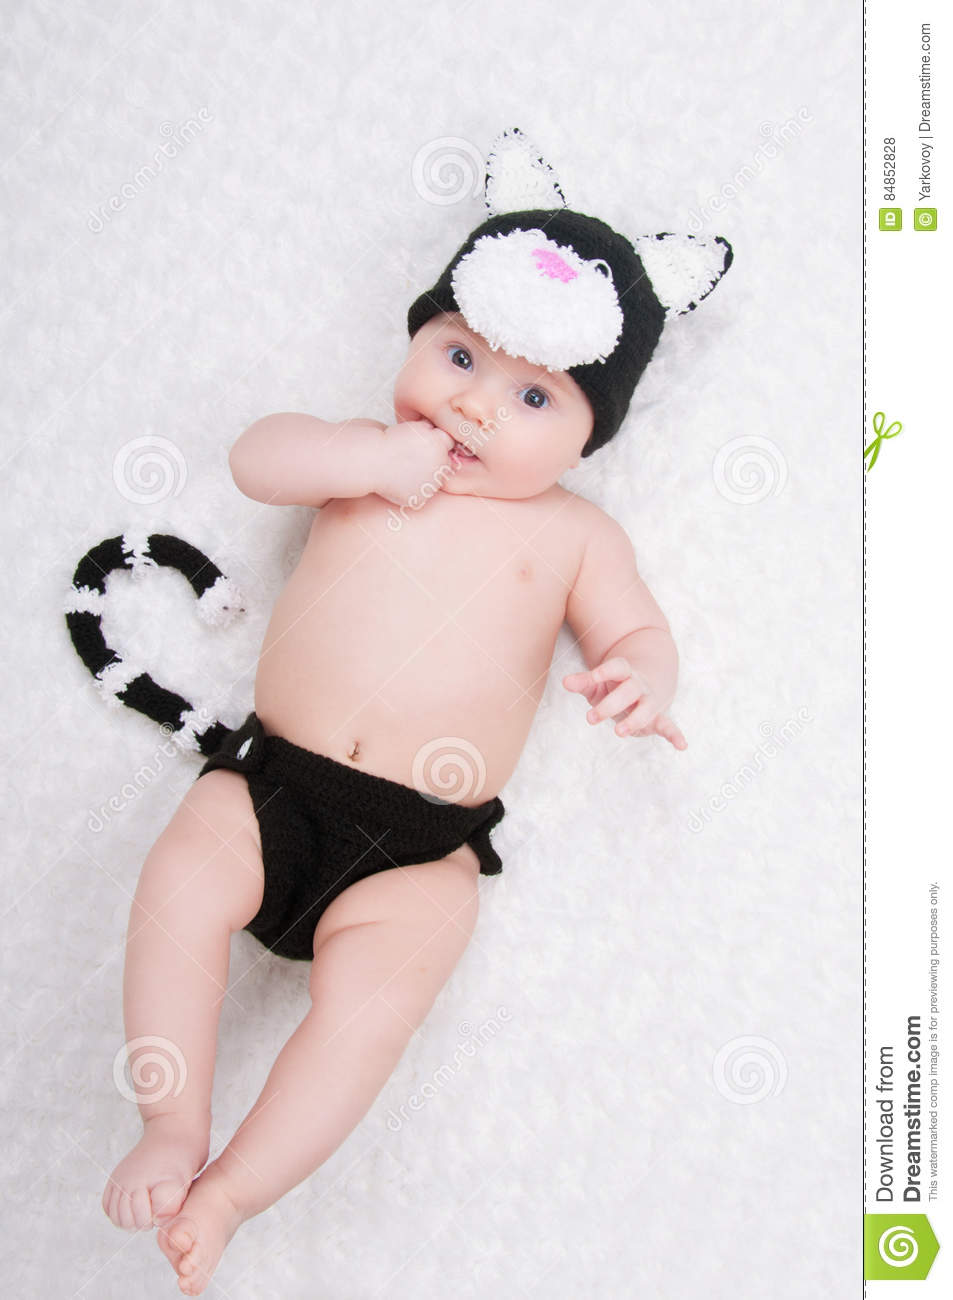 Beautiful baby in funny costume with cat ears and a tail.